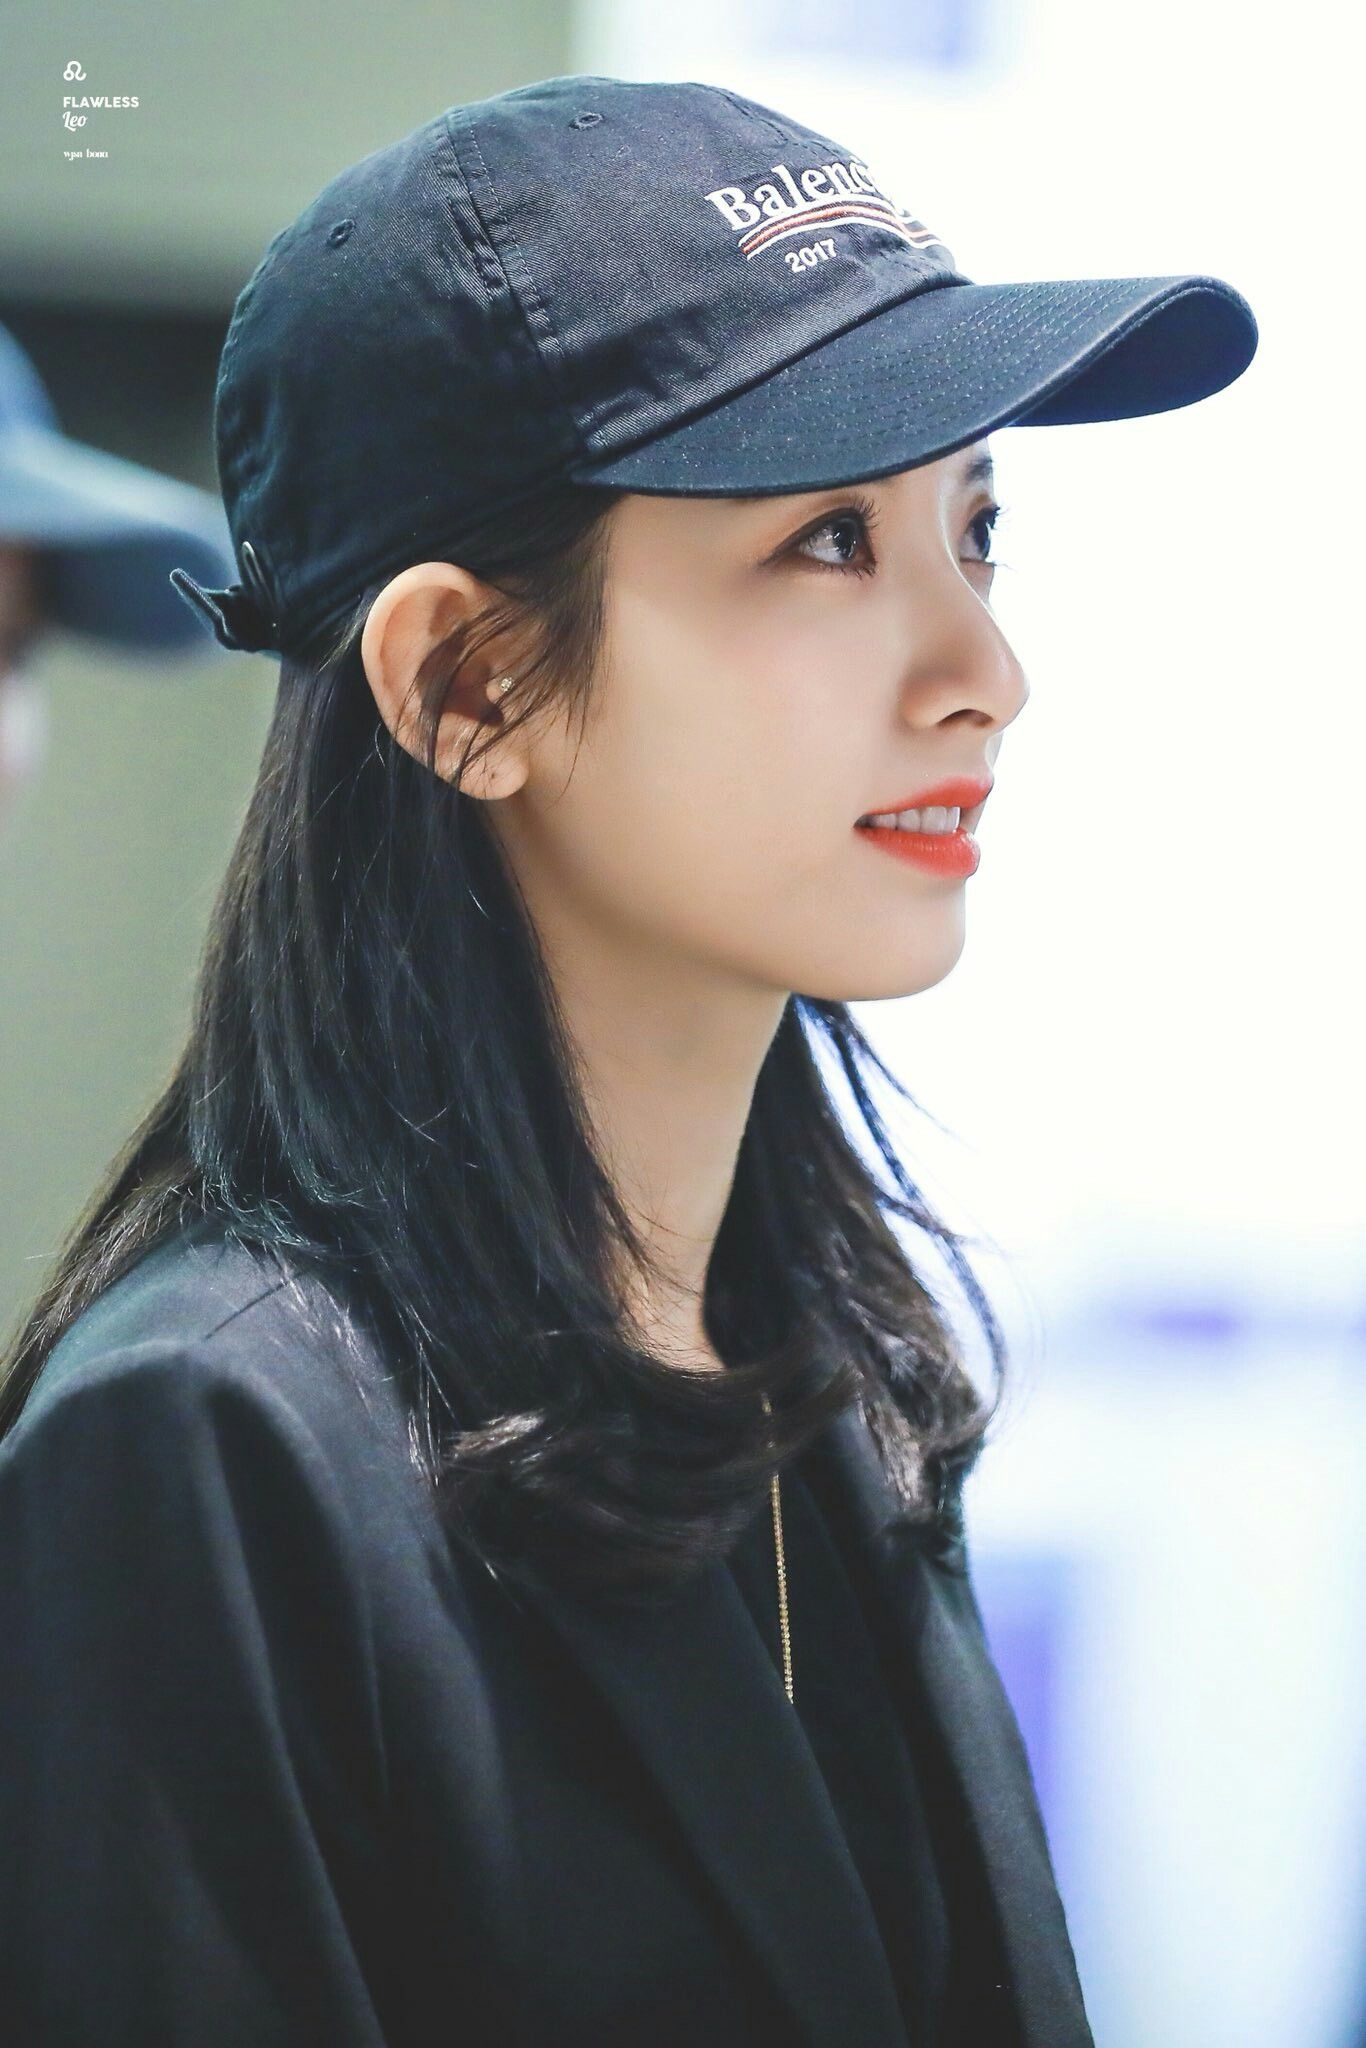 Piercing ideas for girls  Pin by Hye Yeon on Bona  Pinterest  Kpop and Idol